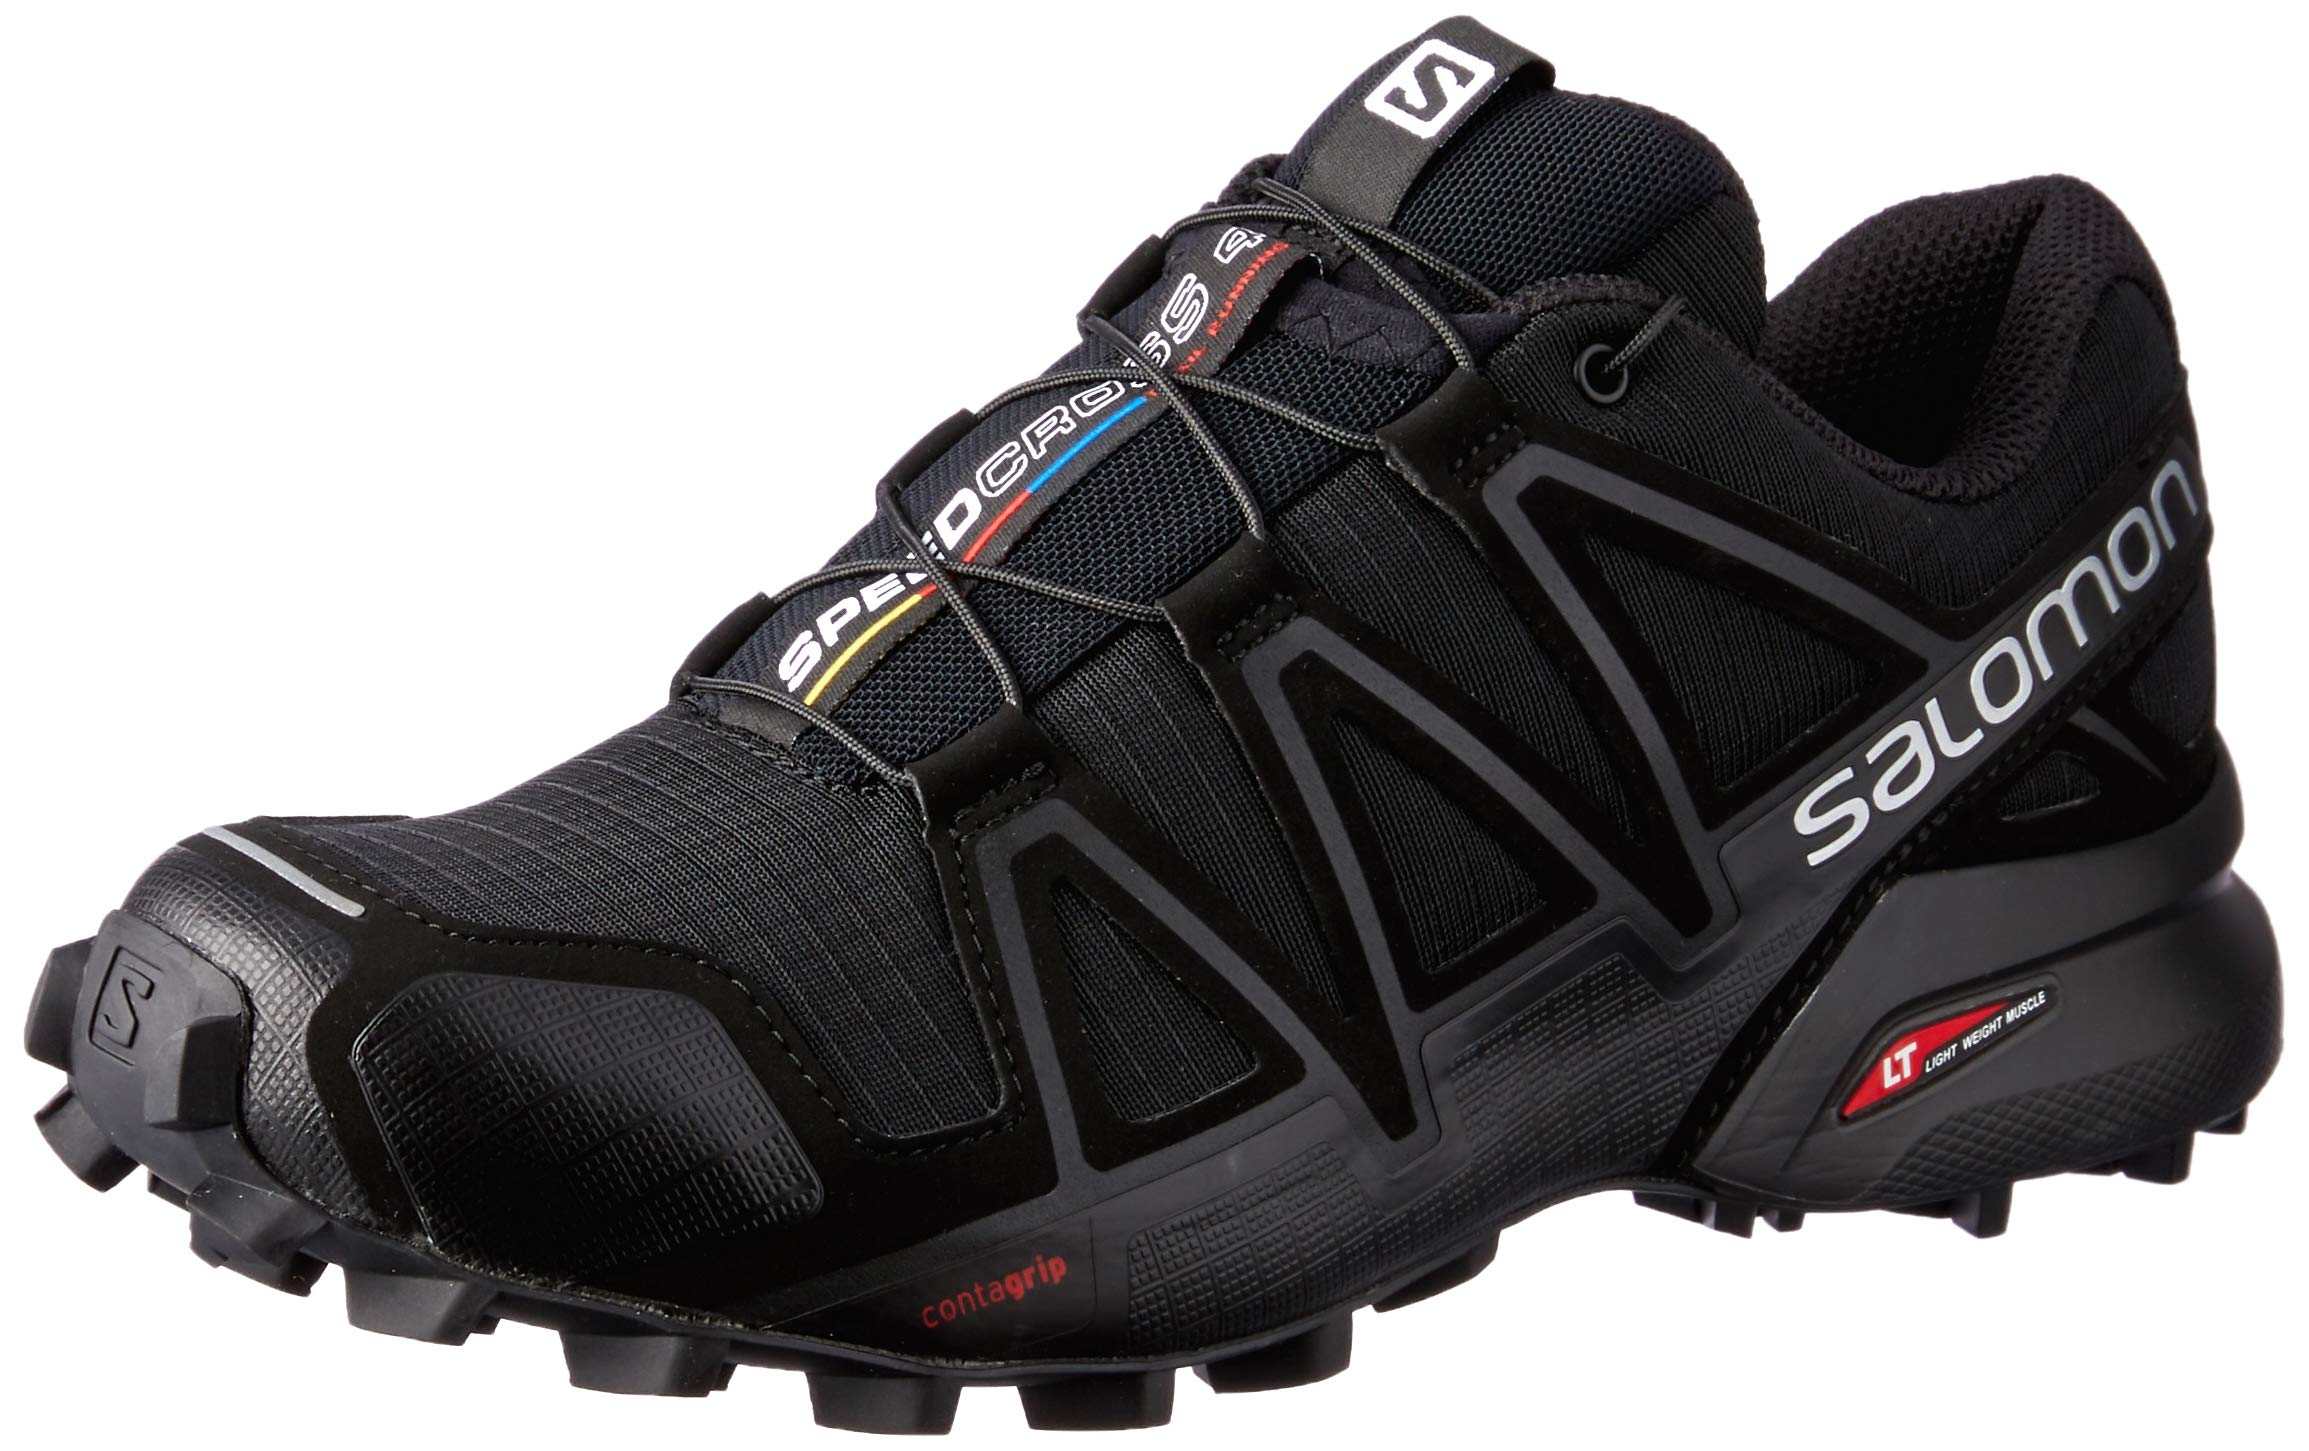 Salomon Women's Speedcross 4 W Trail Runner, Black Metallic, 7 M US by Salomon